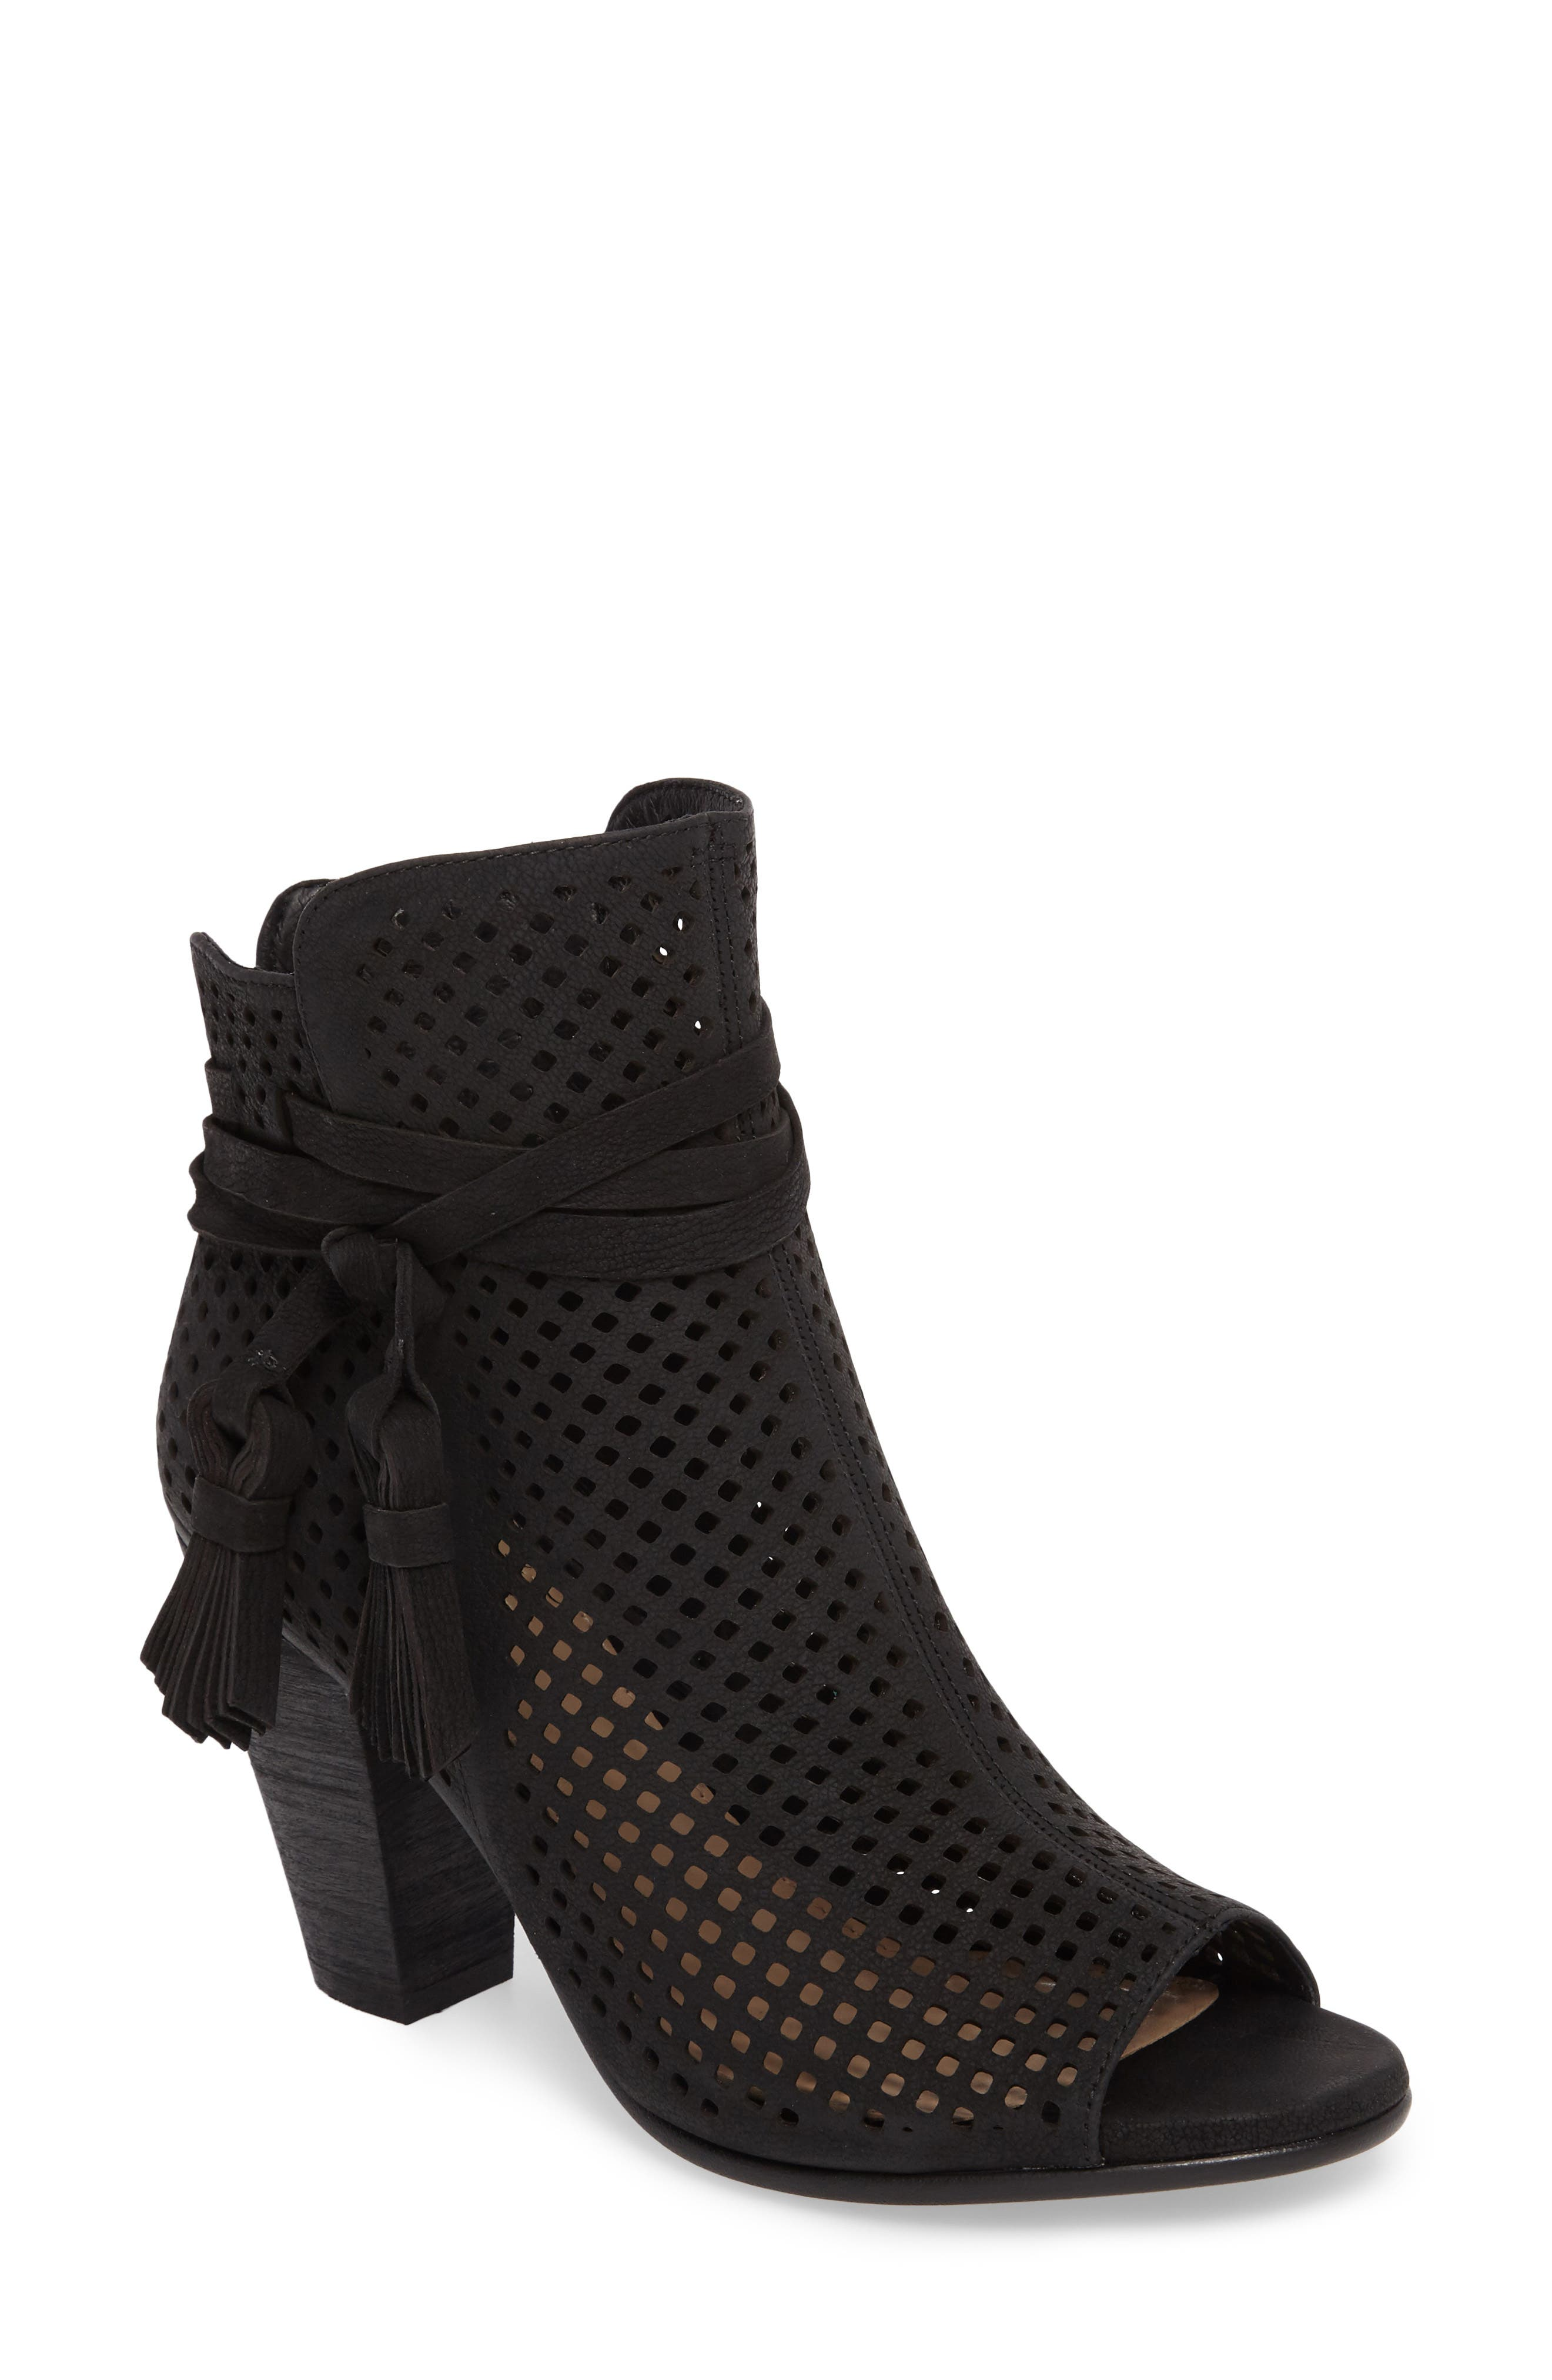 Kamey Perforated Open Toe Bootie,                         Main,                         color, 001